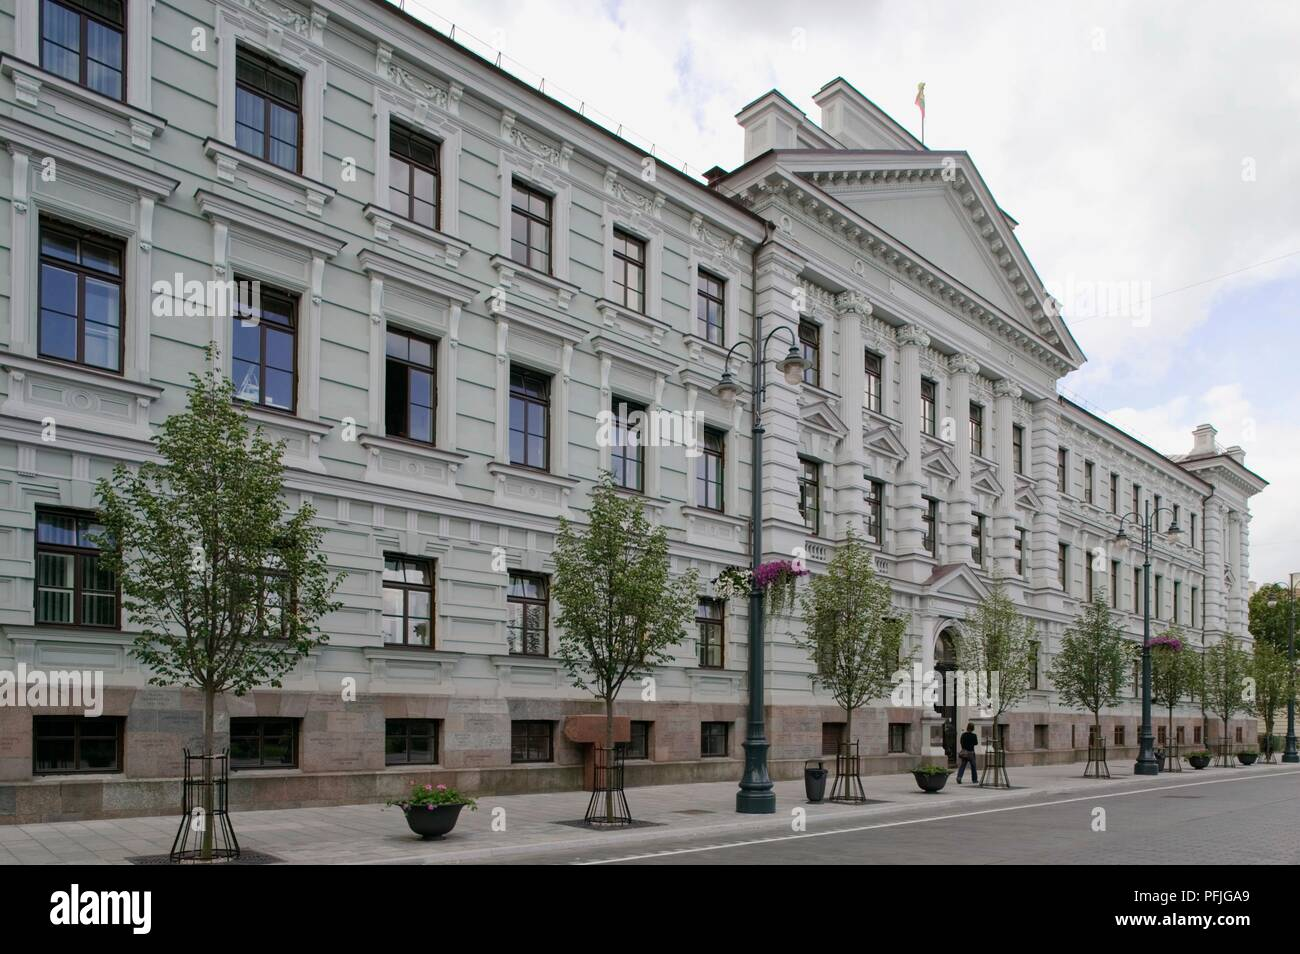 Lithuania, Vilnius, New Town, Gedimino Avenue, facade of former KGB headquarters, now a museum - Stock Image